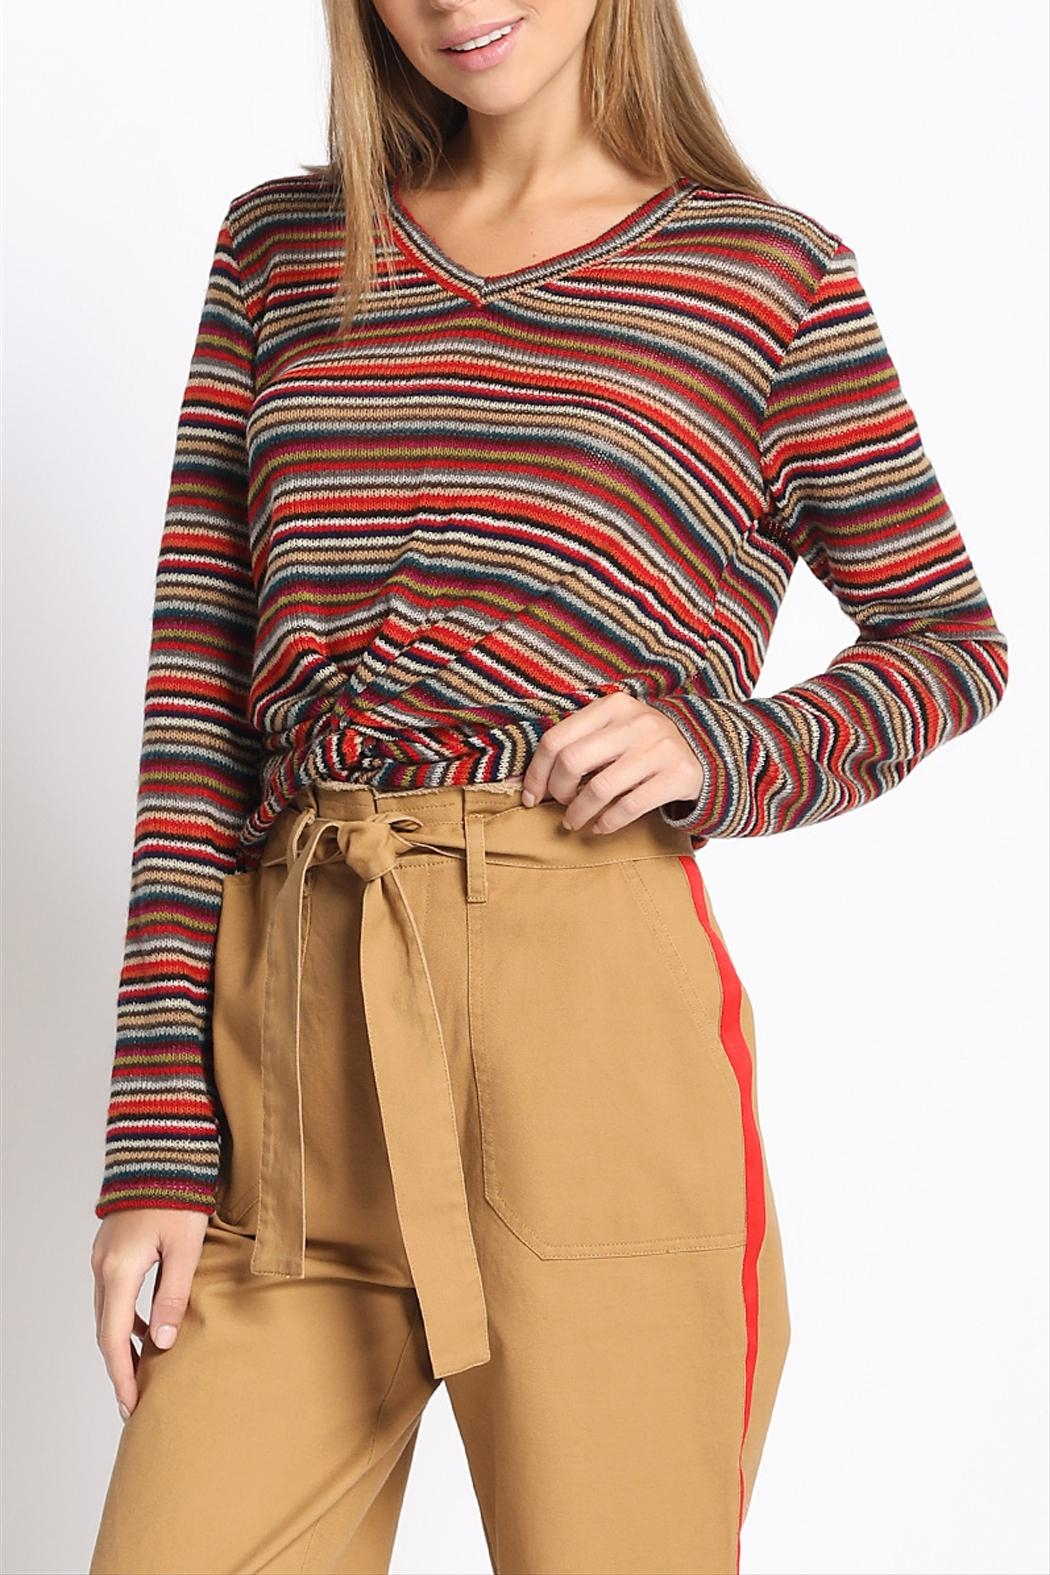 Sans Souci Multi-Stripe Twisted Top - Front Cropped Image